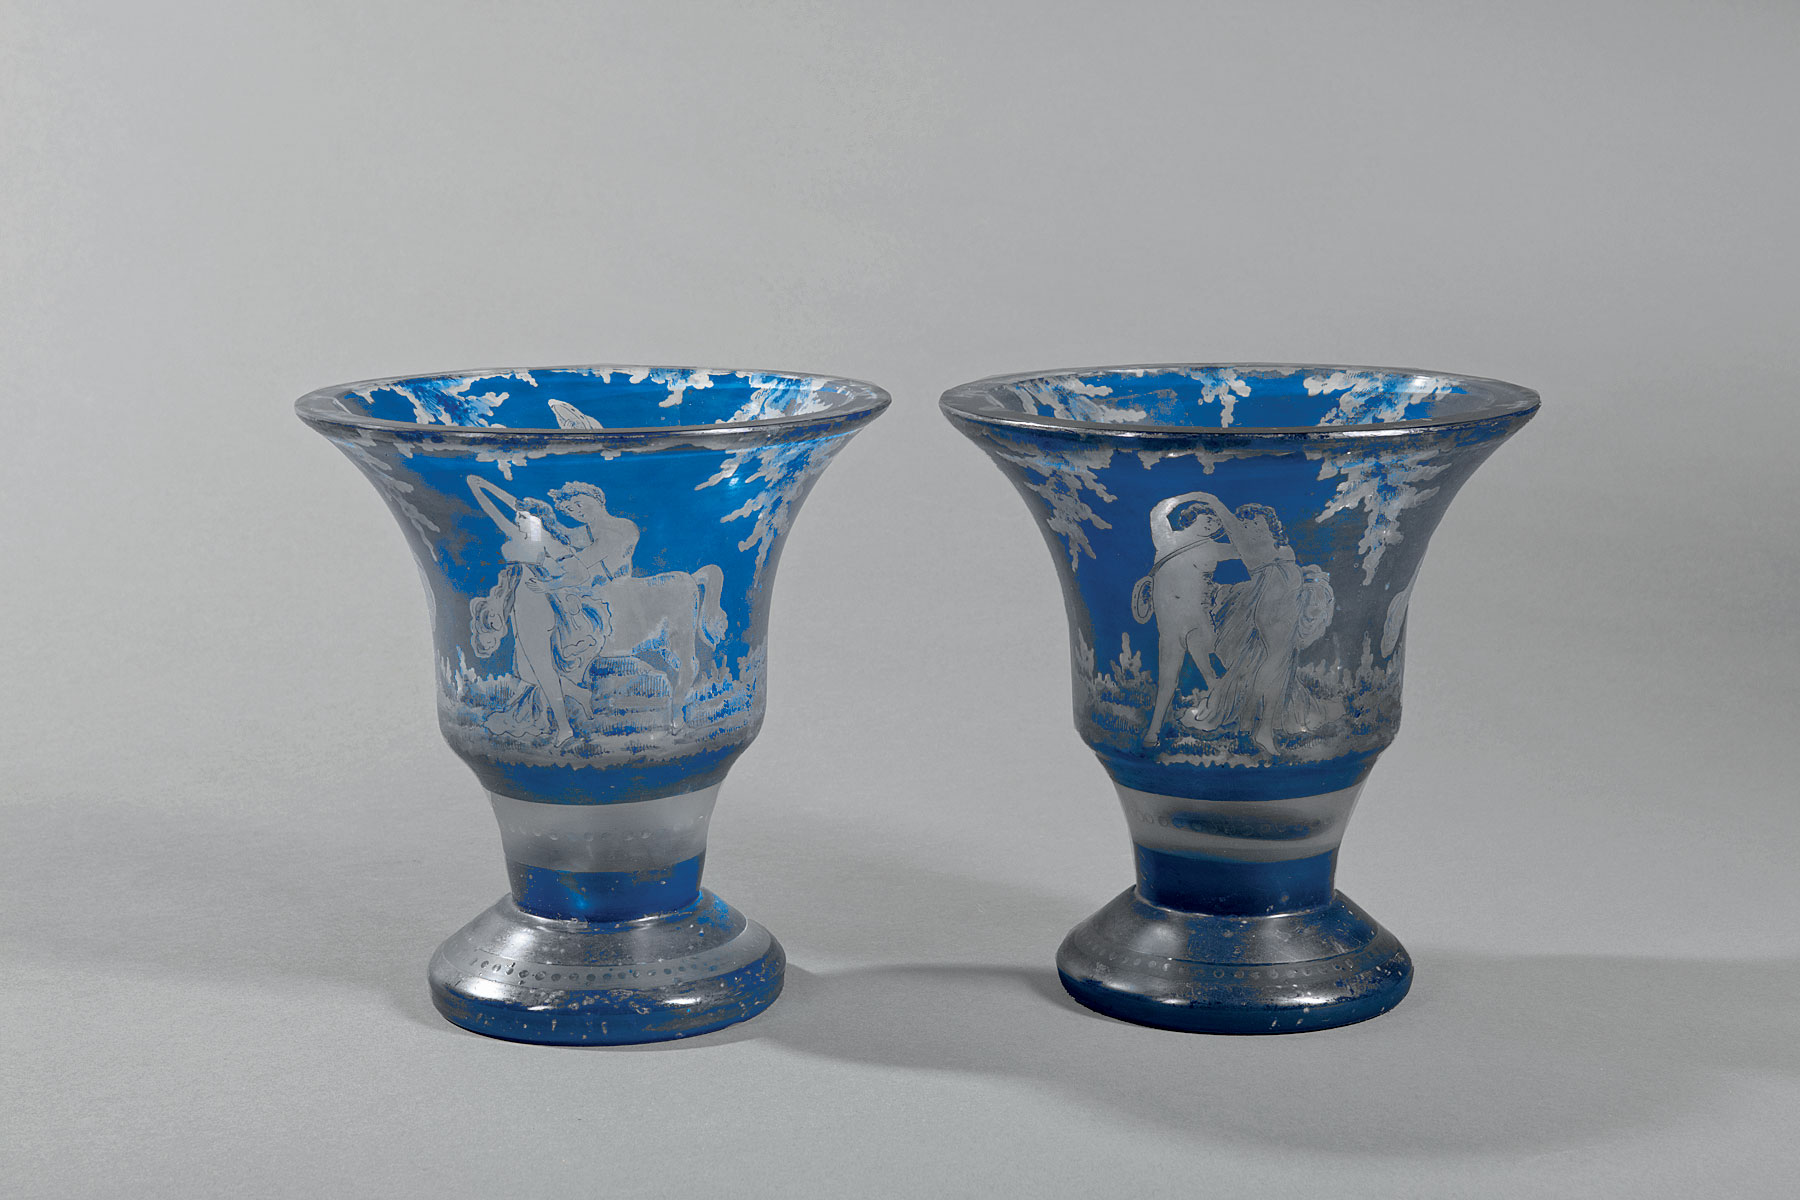 Lot 985 - Pair of Italian Painted Blue Glass Vases , 19th c., reserve-decorated with dancing nudes and